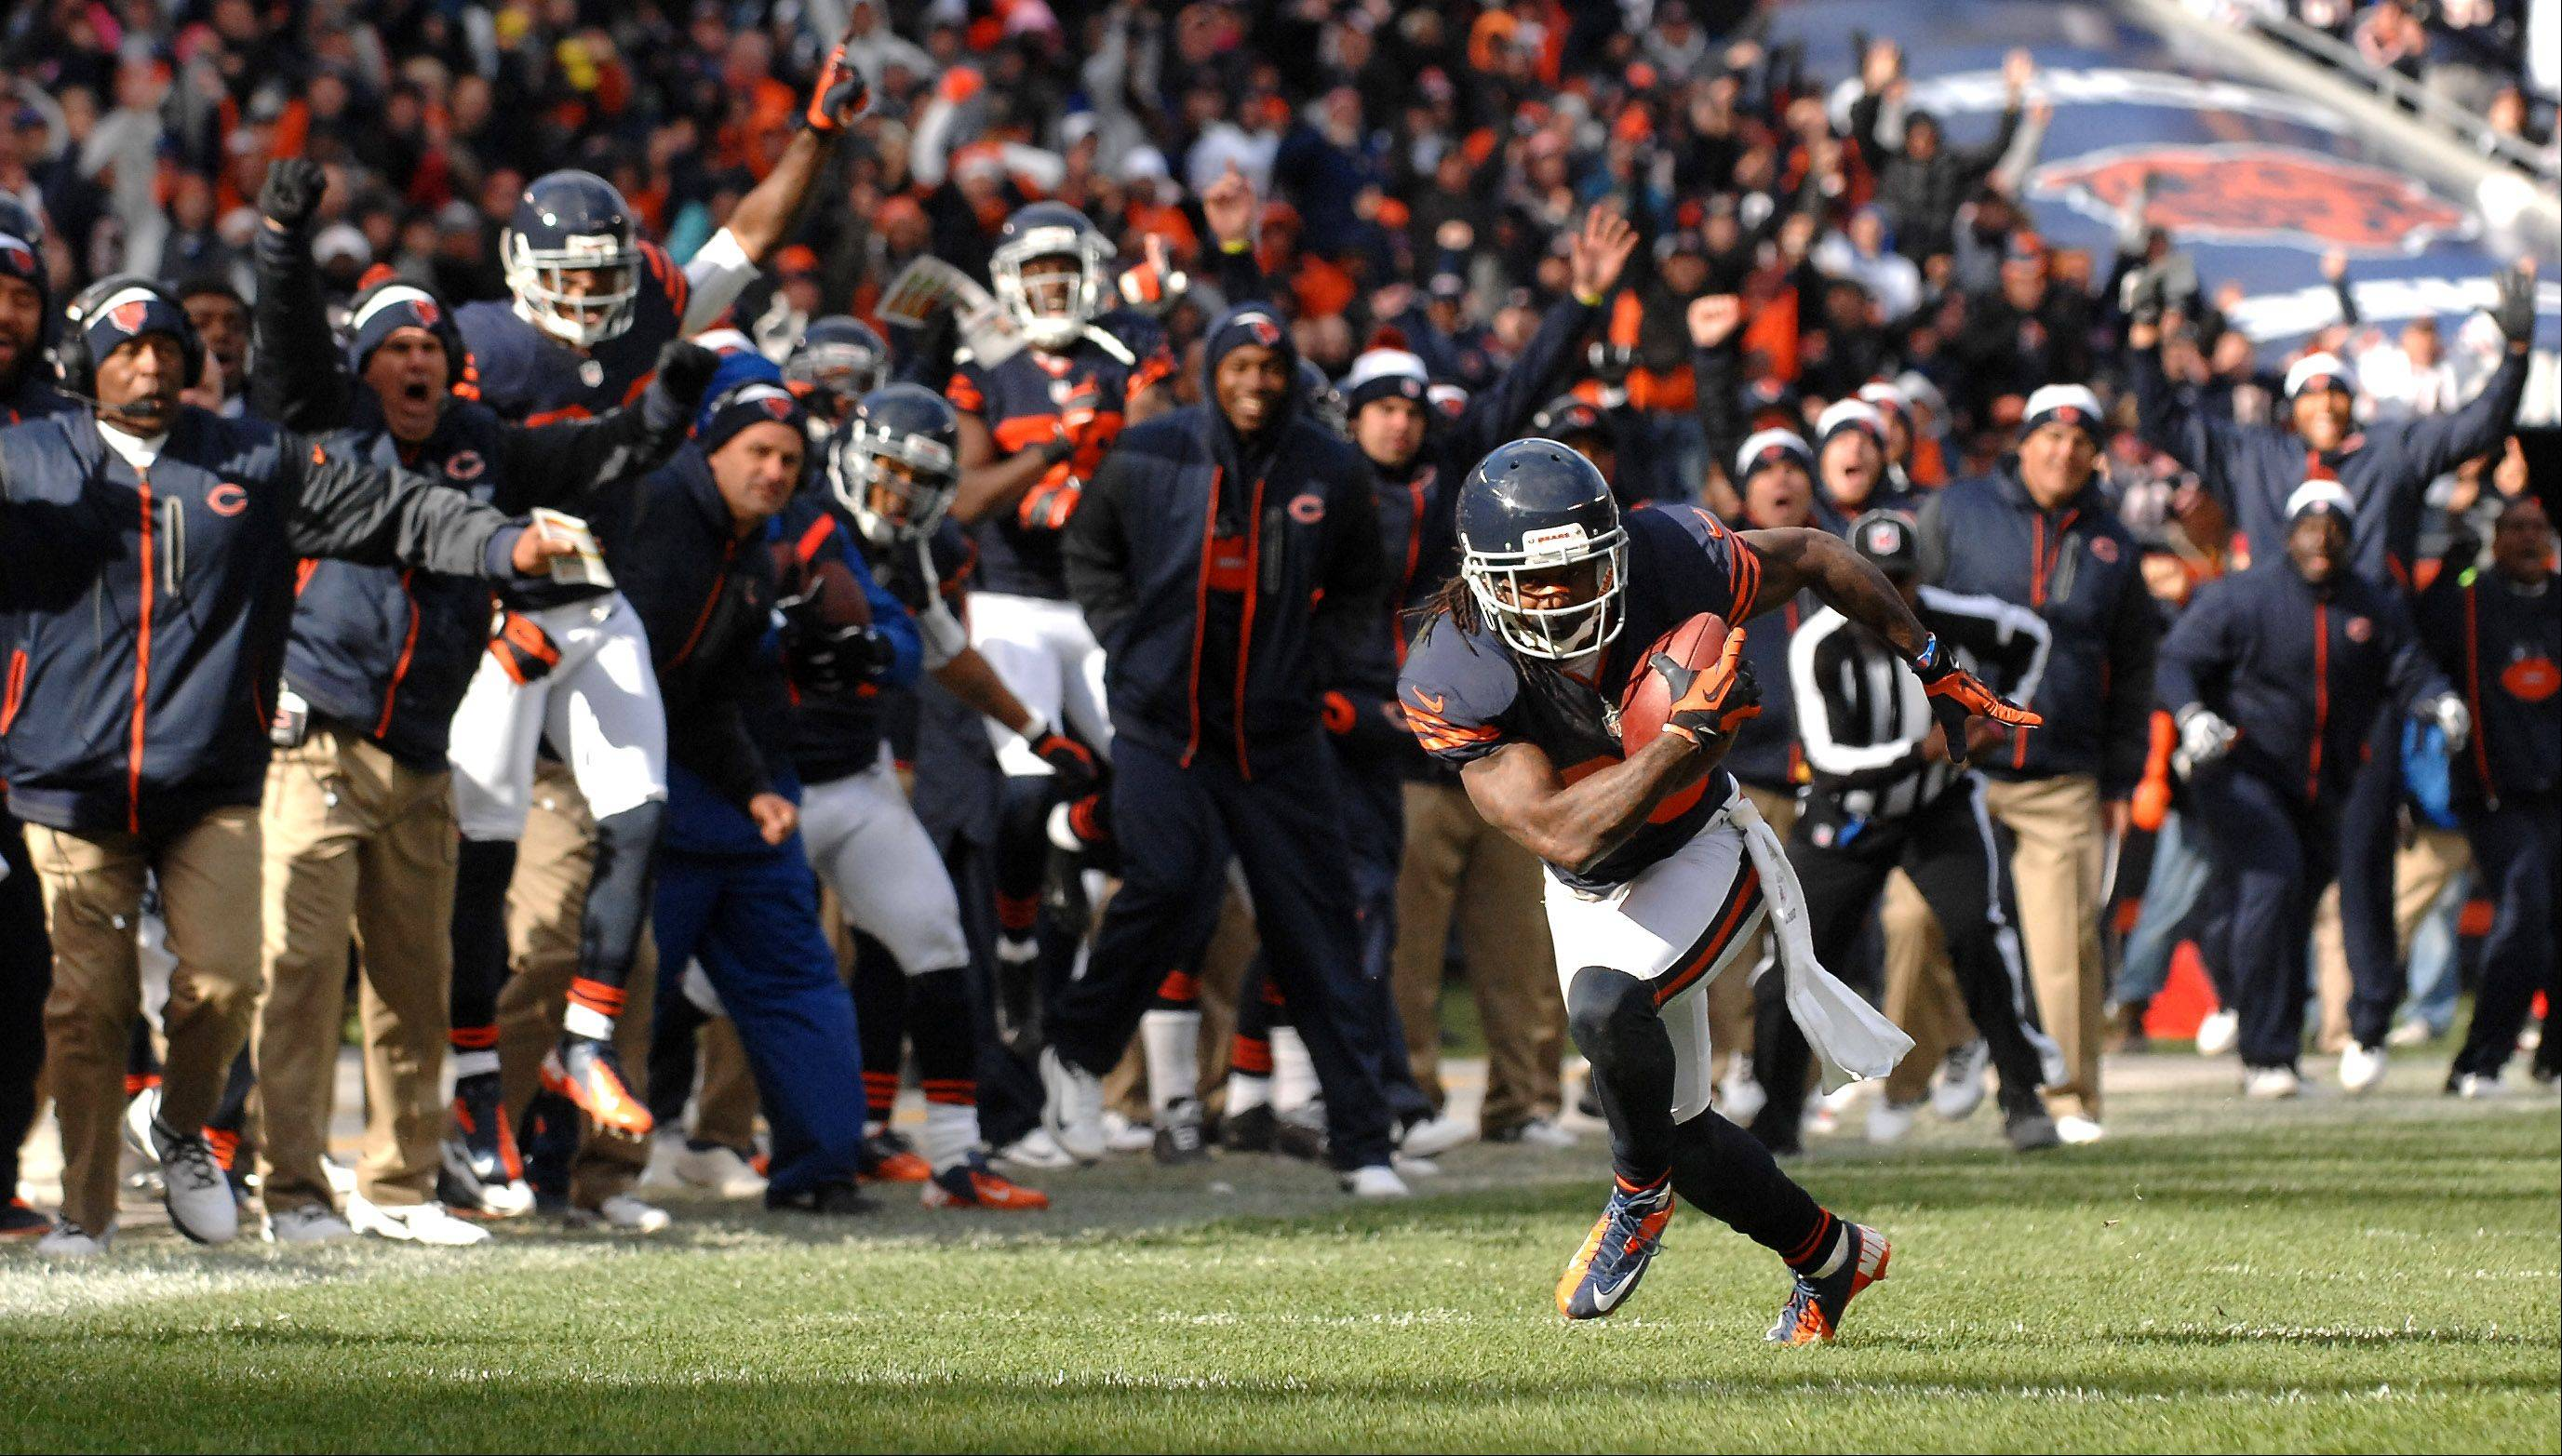 The Chicago Bears bench erupts as cornerback Tim Jennings (26) returns an interception for a touchdown during Sunday's game at Soldier Field in Chicago.